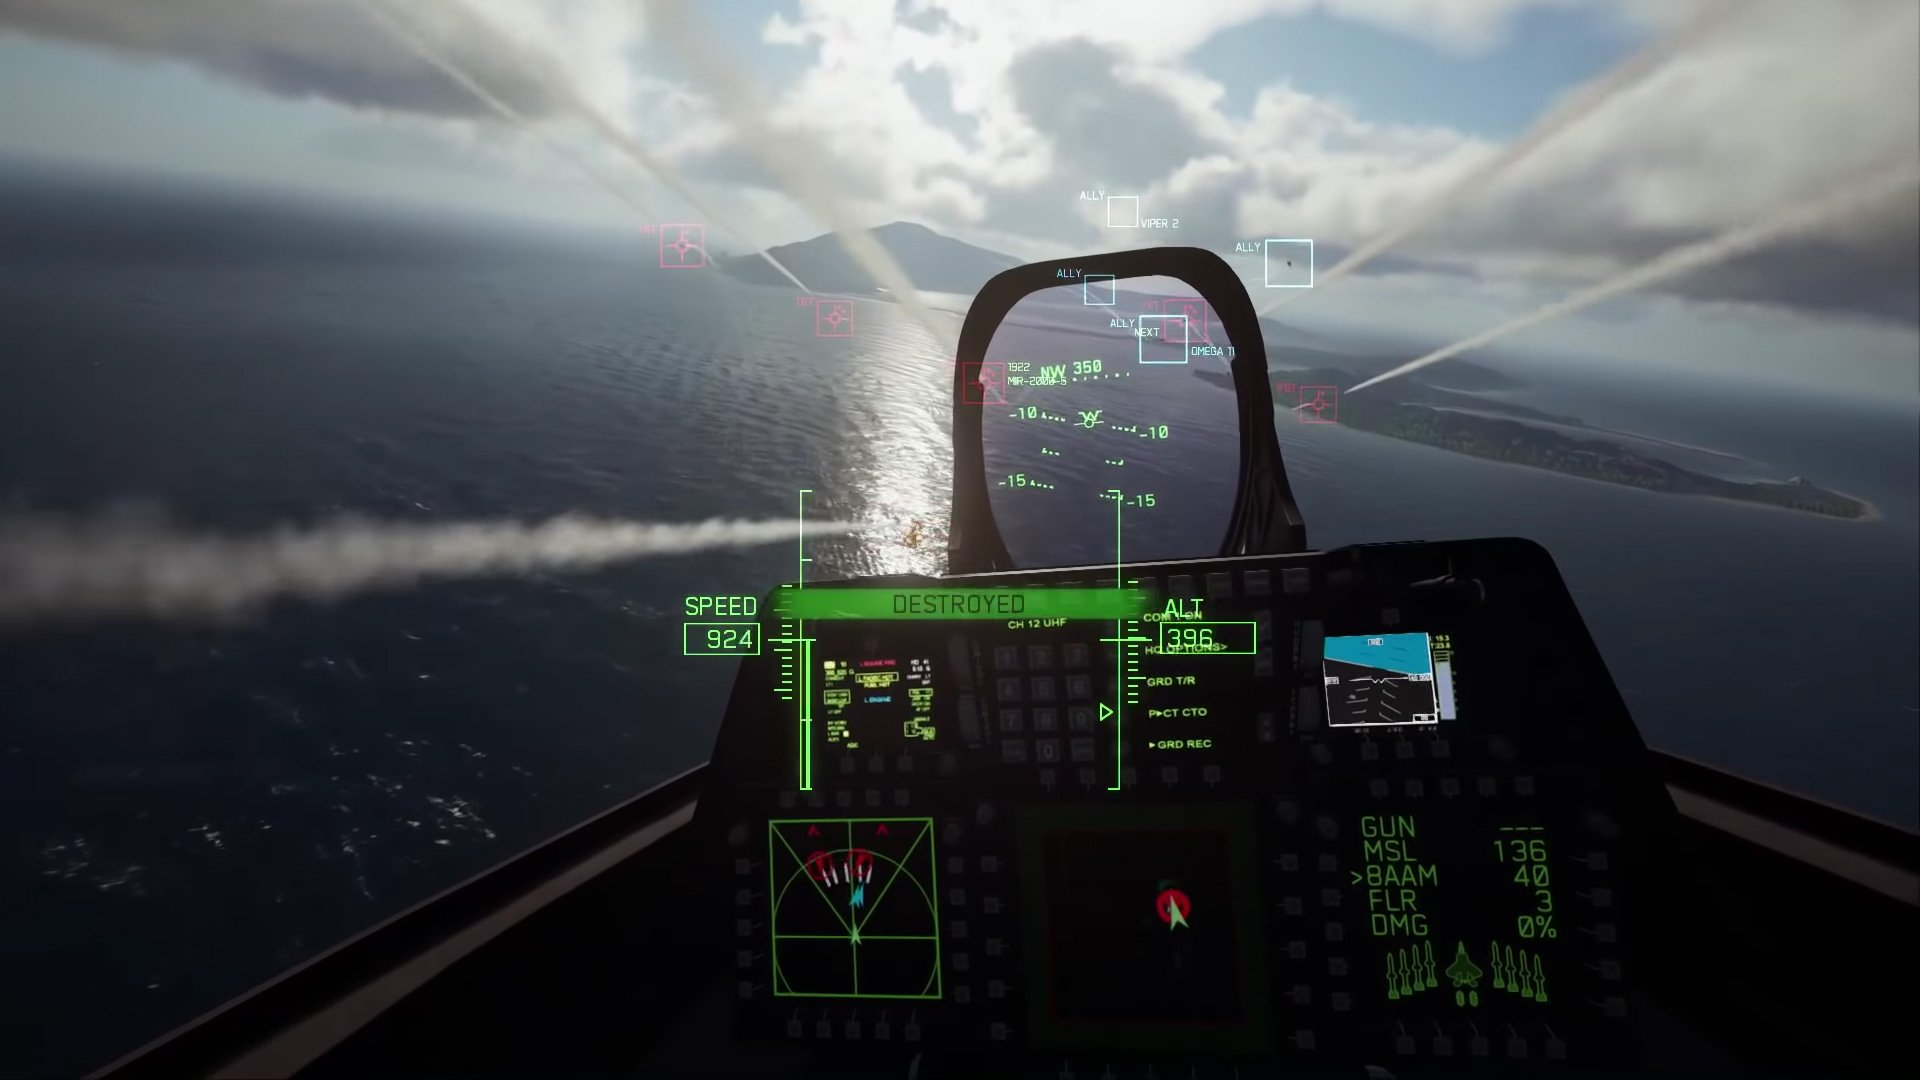 I have high hopes for Ace Combat 7's VR mode